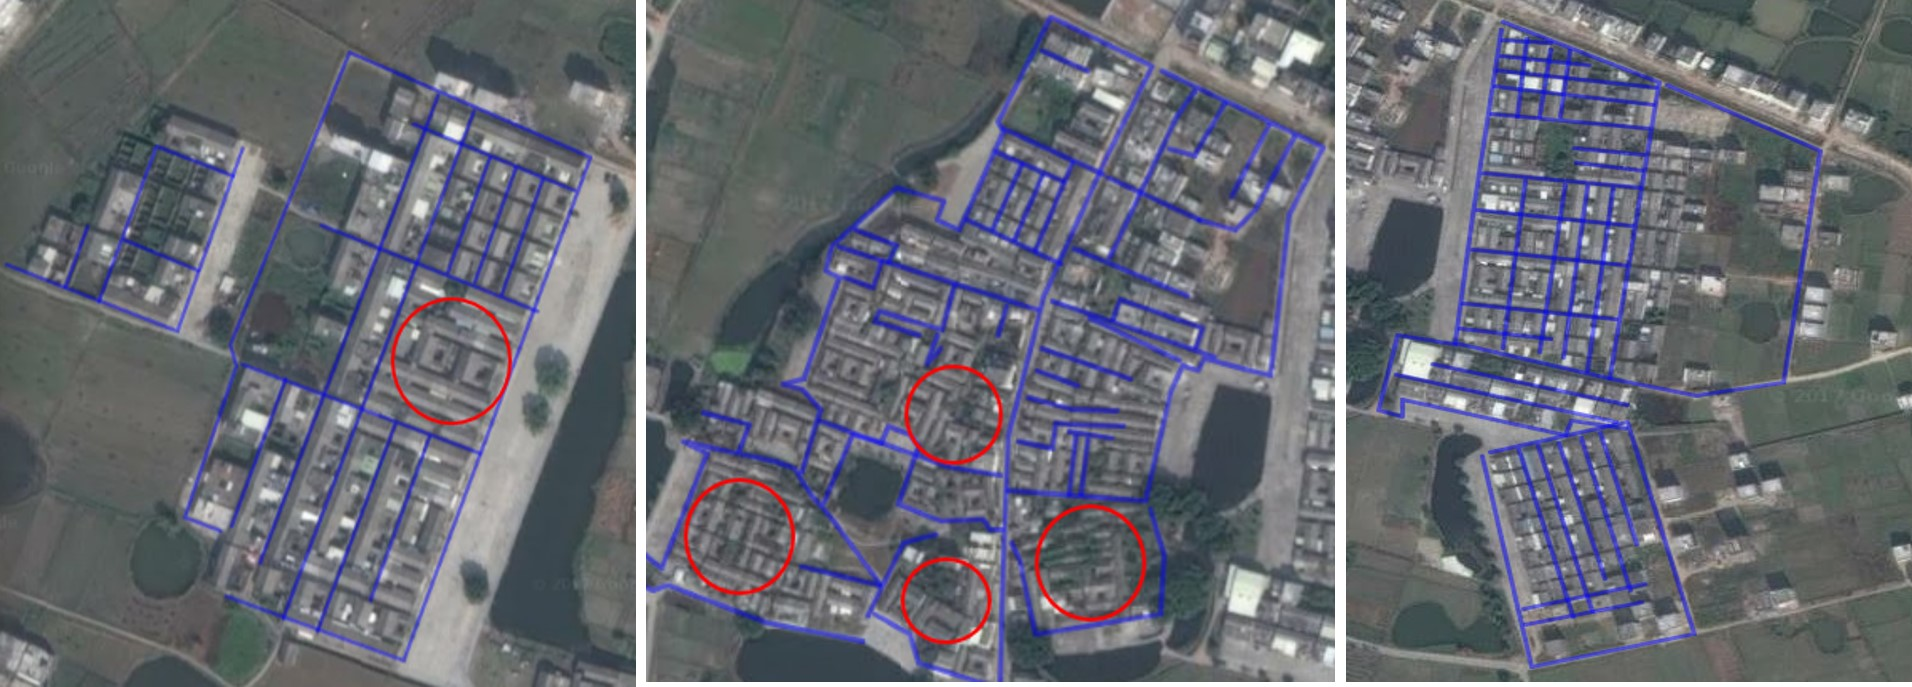 20180716040958777 - MMS Applied In Cadastral Surveying